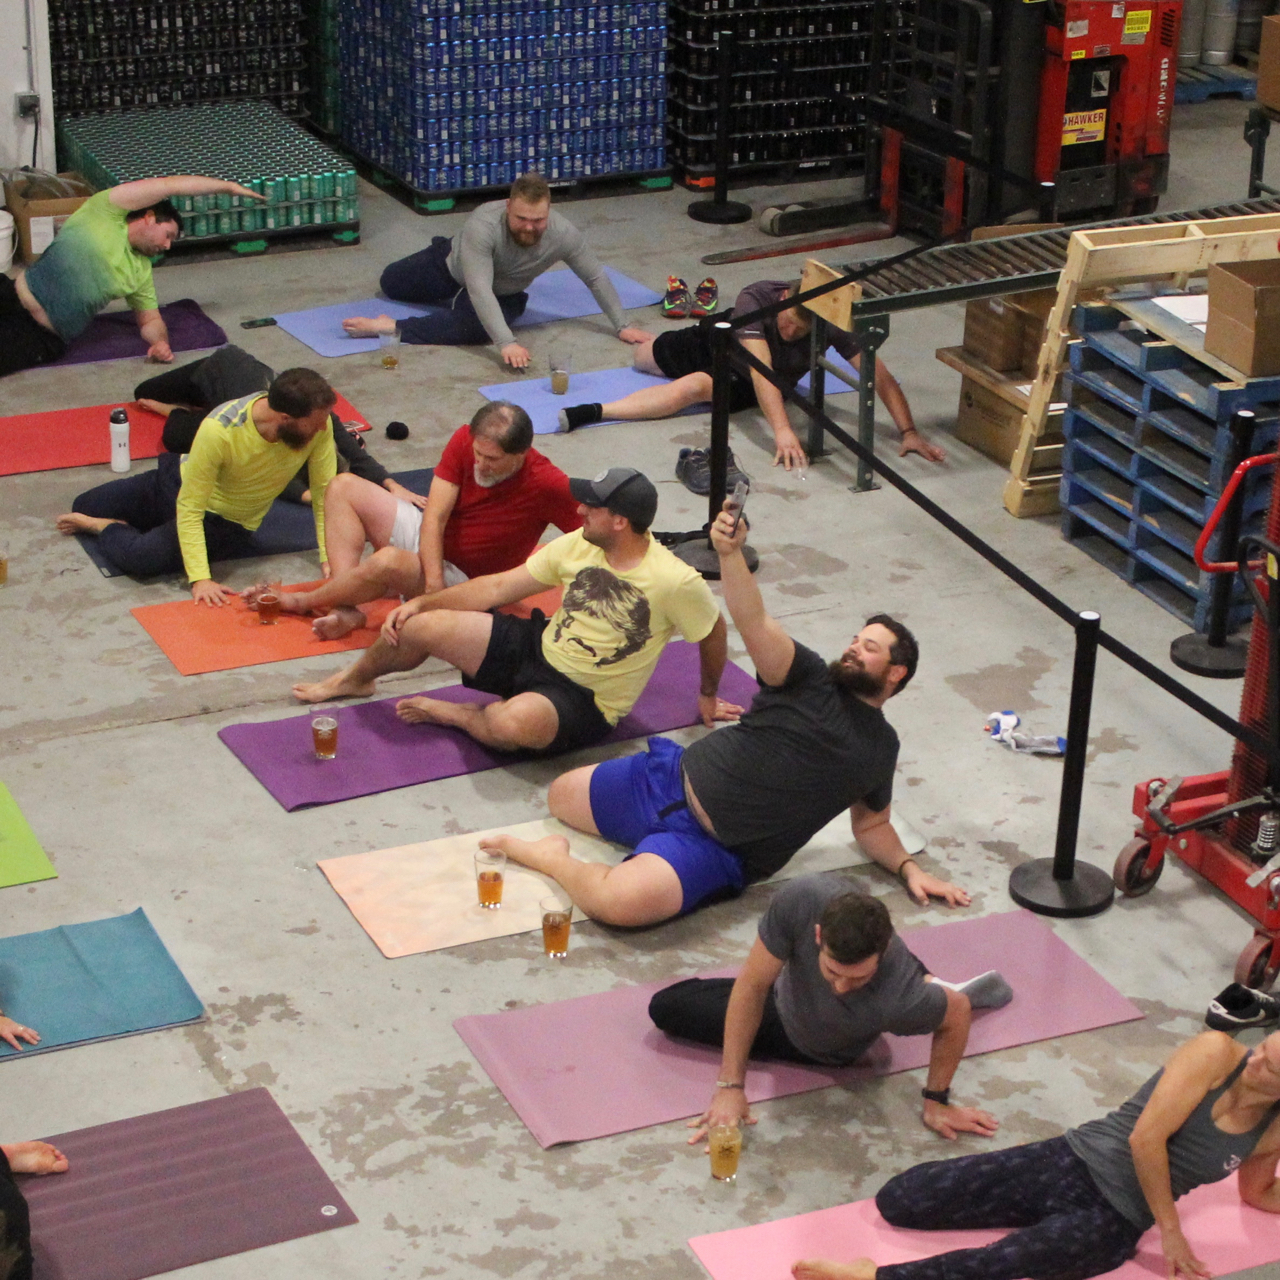 Yoga + Beer Night @ District:  A Combination to Achieve the Ultimate Zen - Image 4